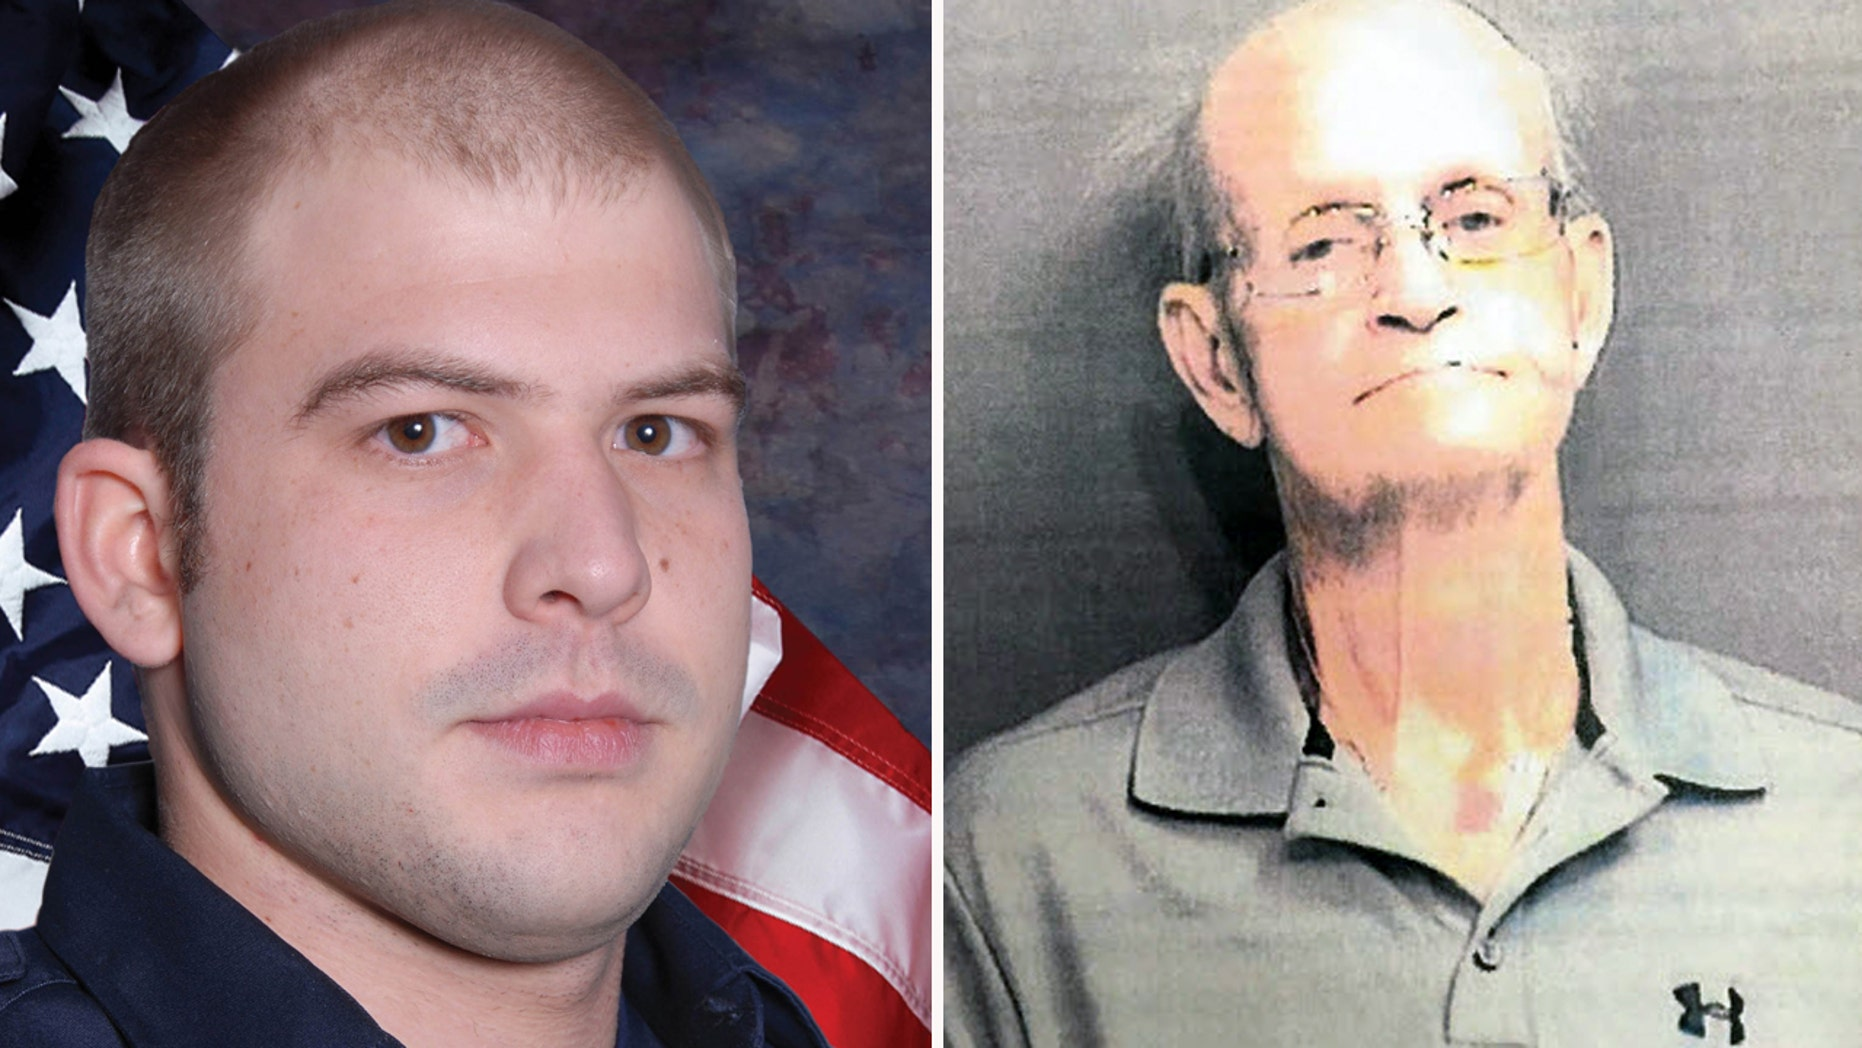 The undated photos at left shows Hamilton (Ohio) firefighter Patrick Wolterman, who died fighting a fire on Dec. 28, 2015. Homeowner Lester Parker, right, was arrested Dec. 12, 2016 and accused of aggravated arson and murder in the case.